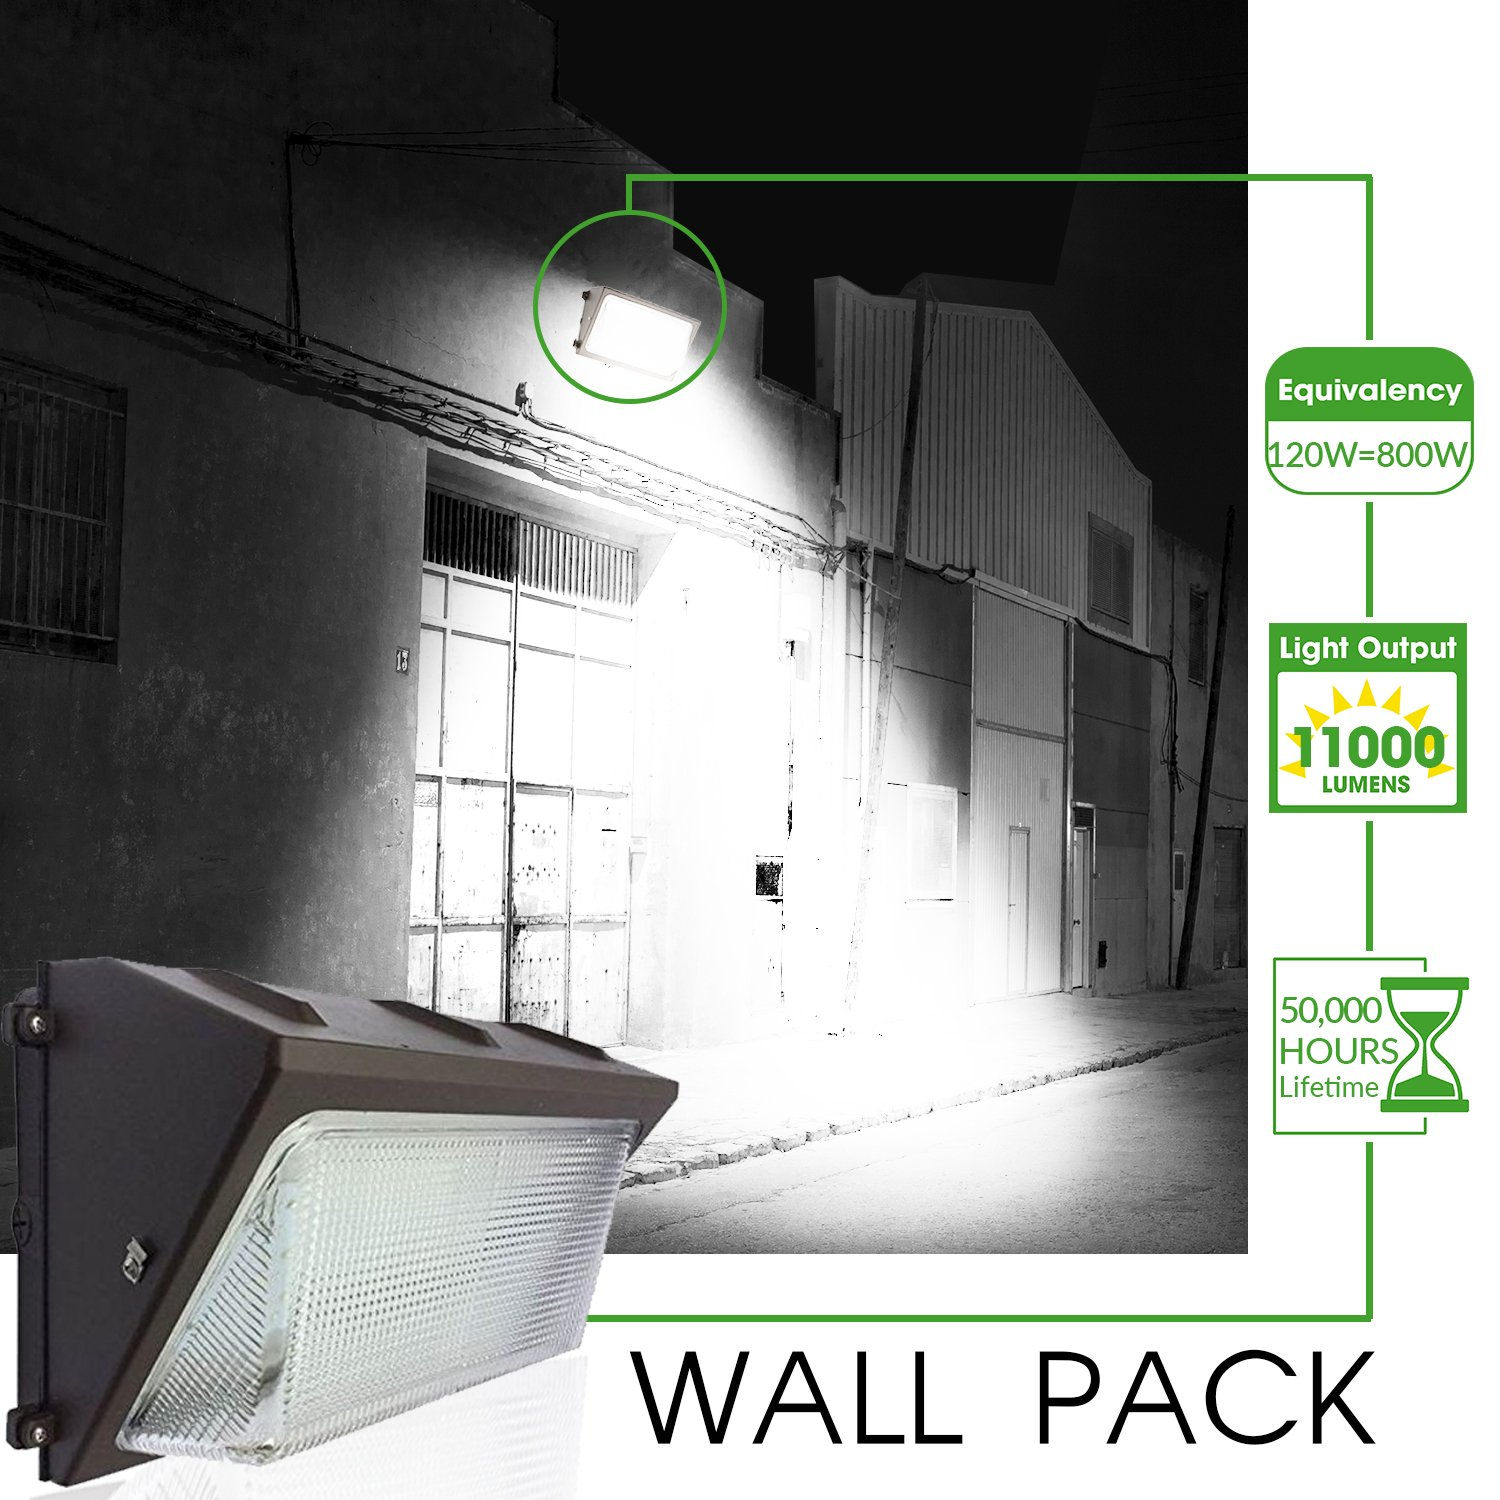 Ul Dlc Listed Led 120w Wall Pack Outdoor Lighting 5000k Cool Ambient Light Controlled Circuit 50 Watt Lamp Wiring White 11 000 Lumen 800 Equivalency Replacement Life Hours Highest Quality